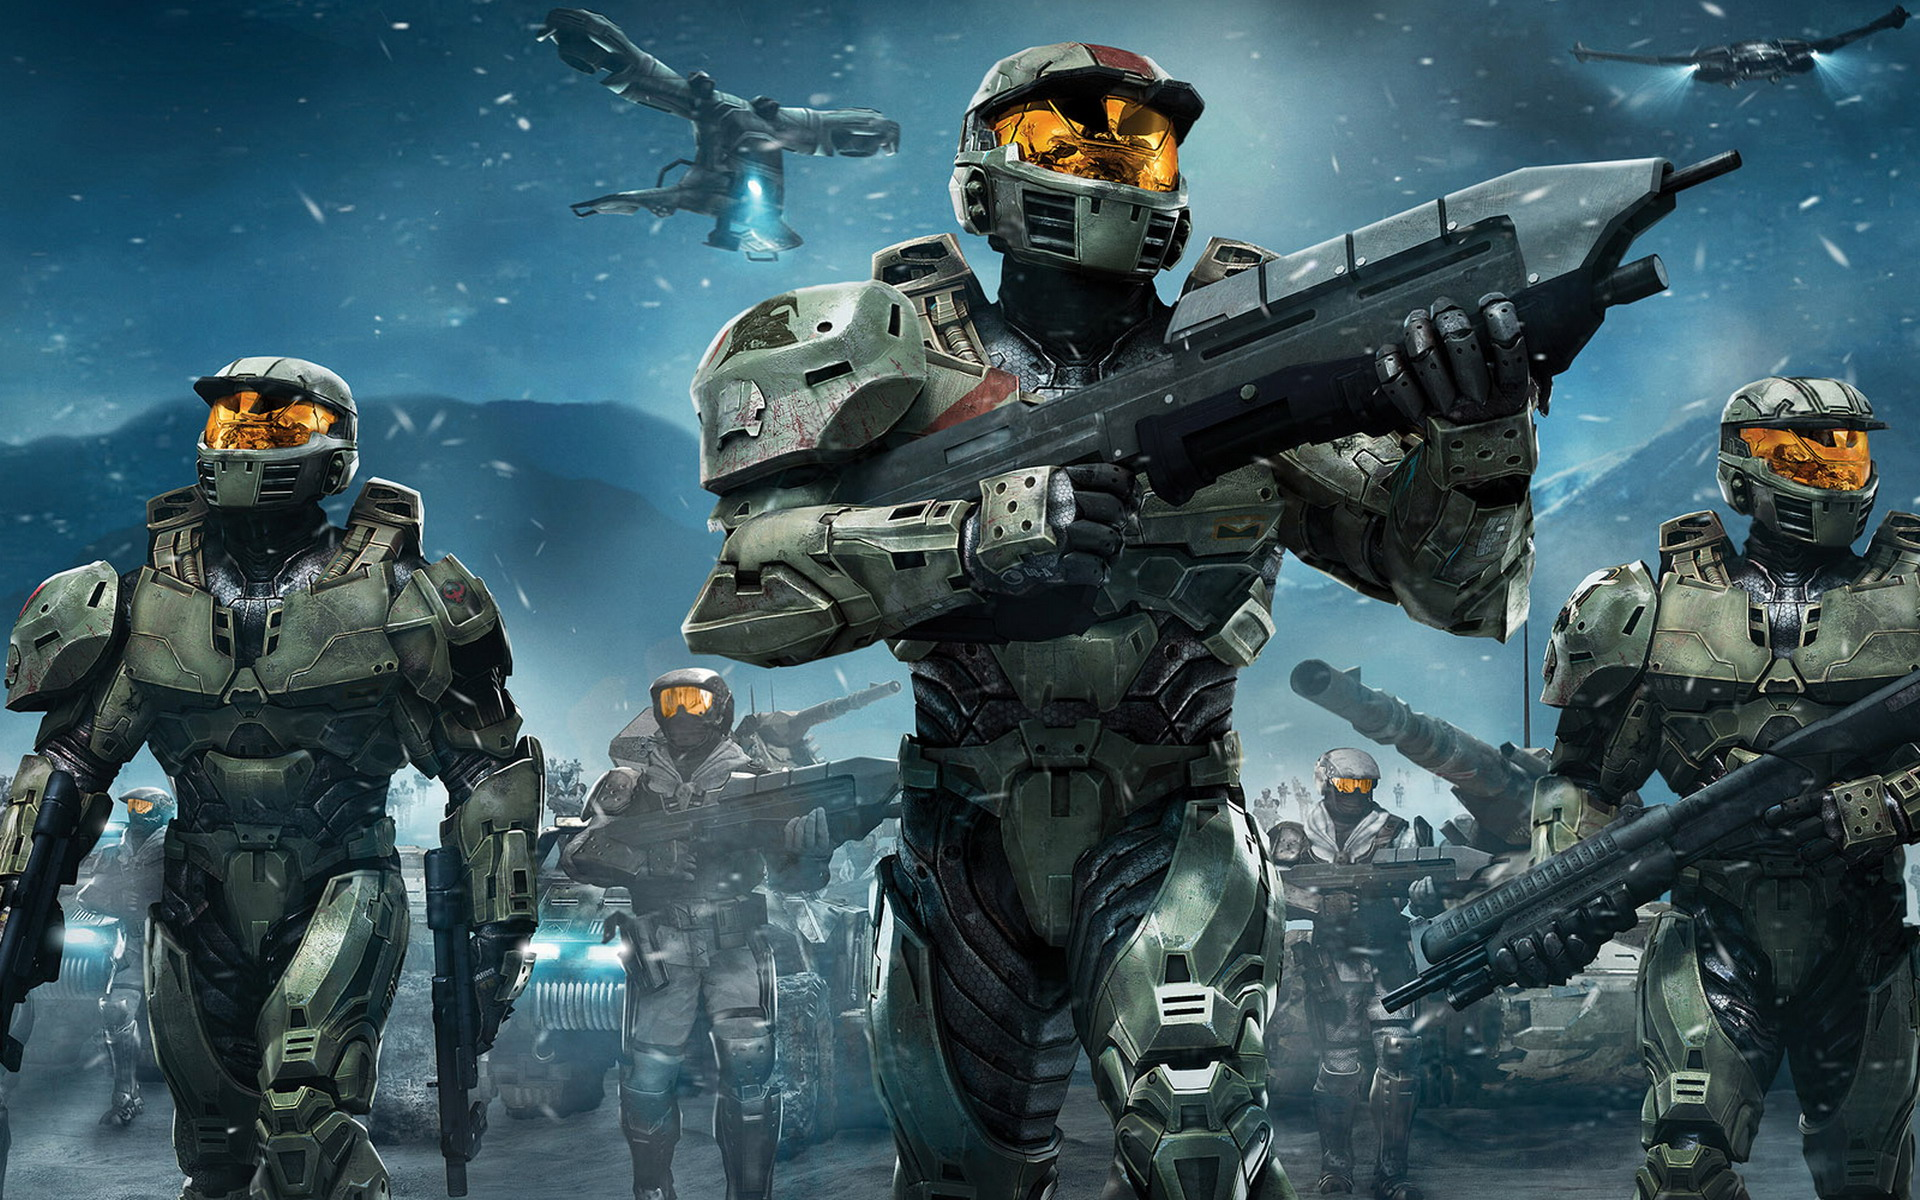 Halo Wars Game 787.52 Kb